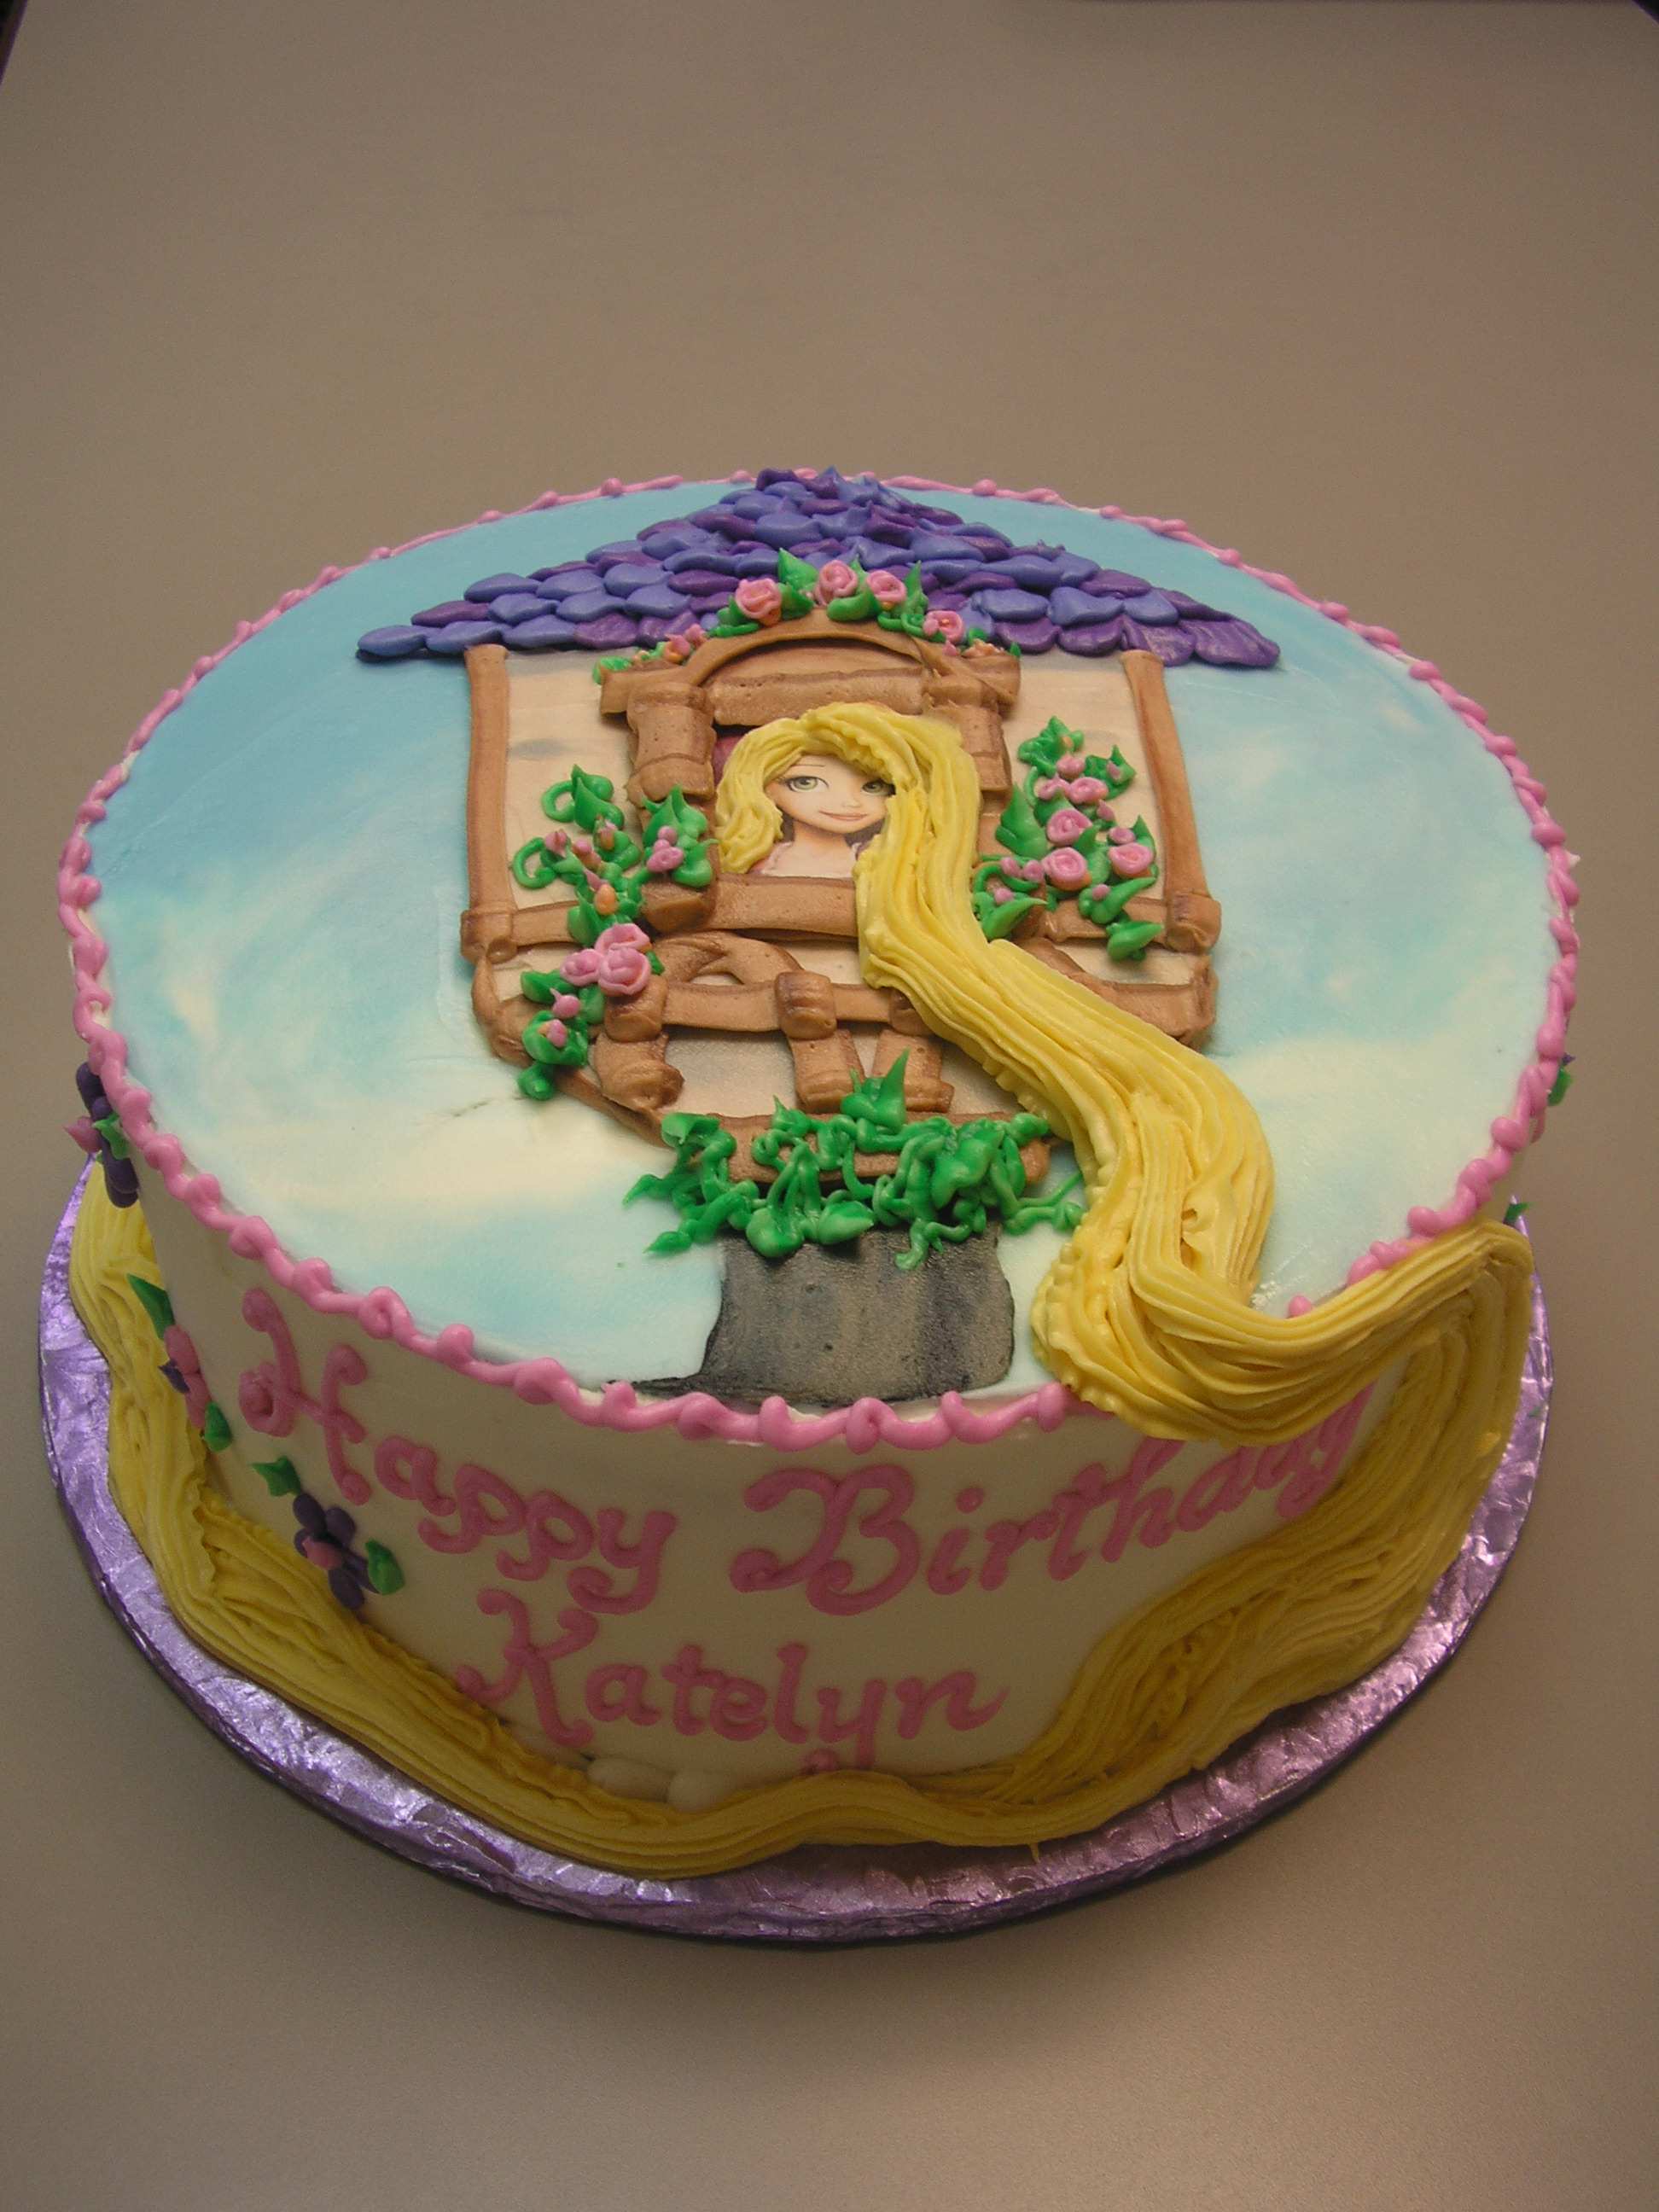 Icing drawing of rapunzel on a cake